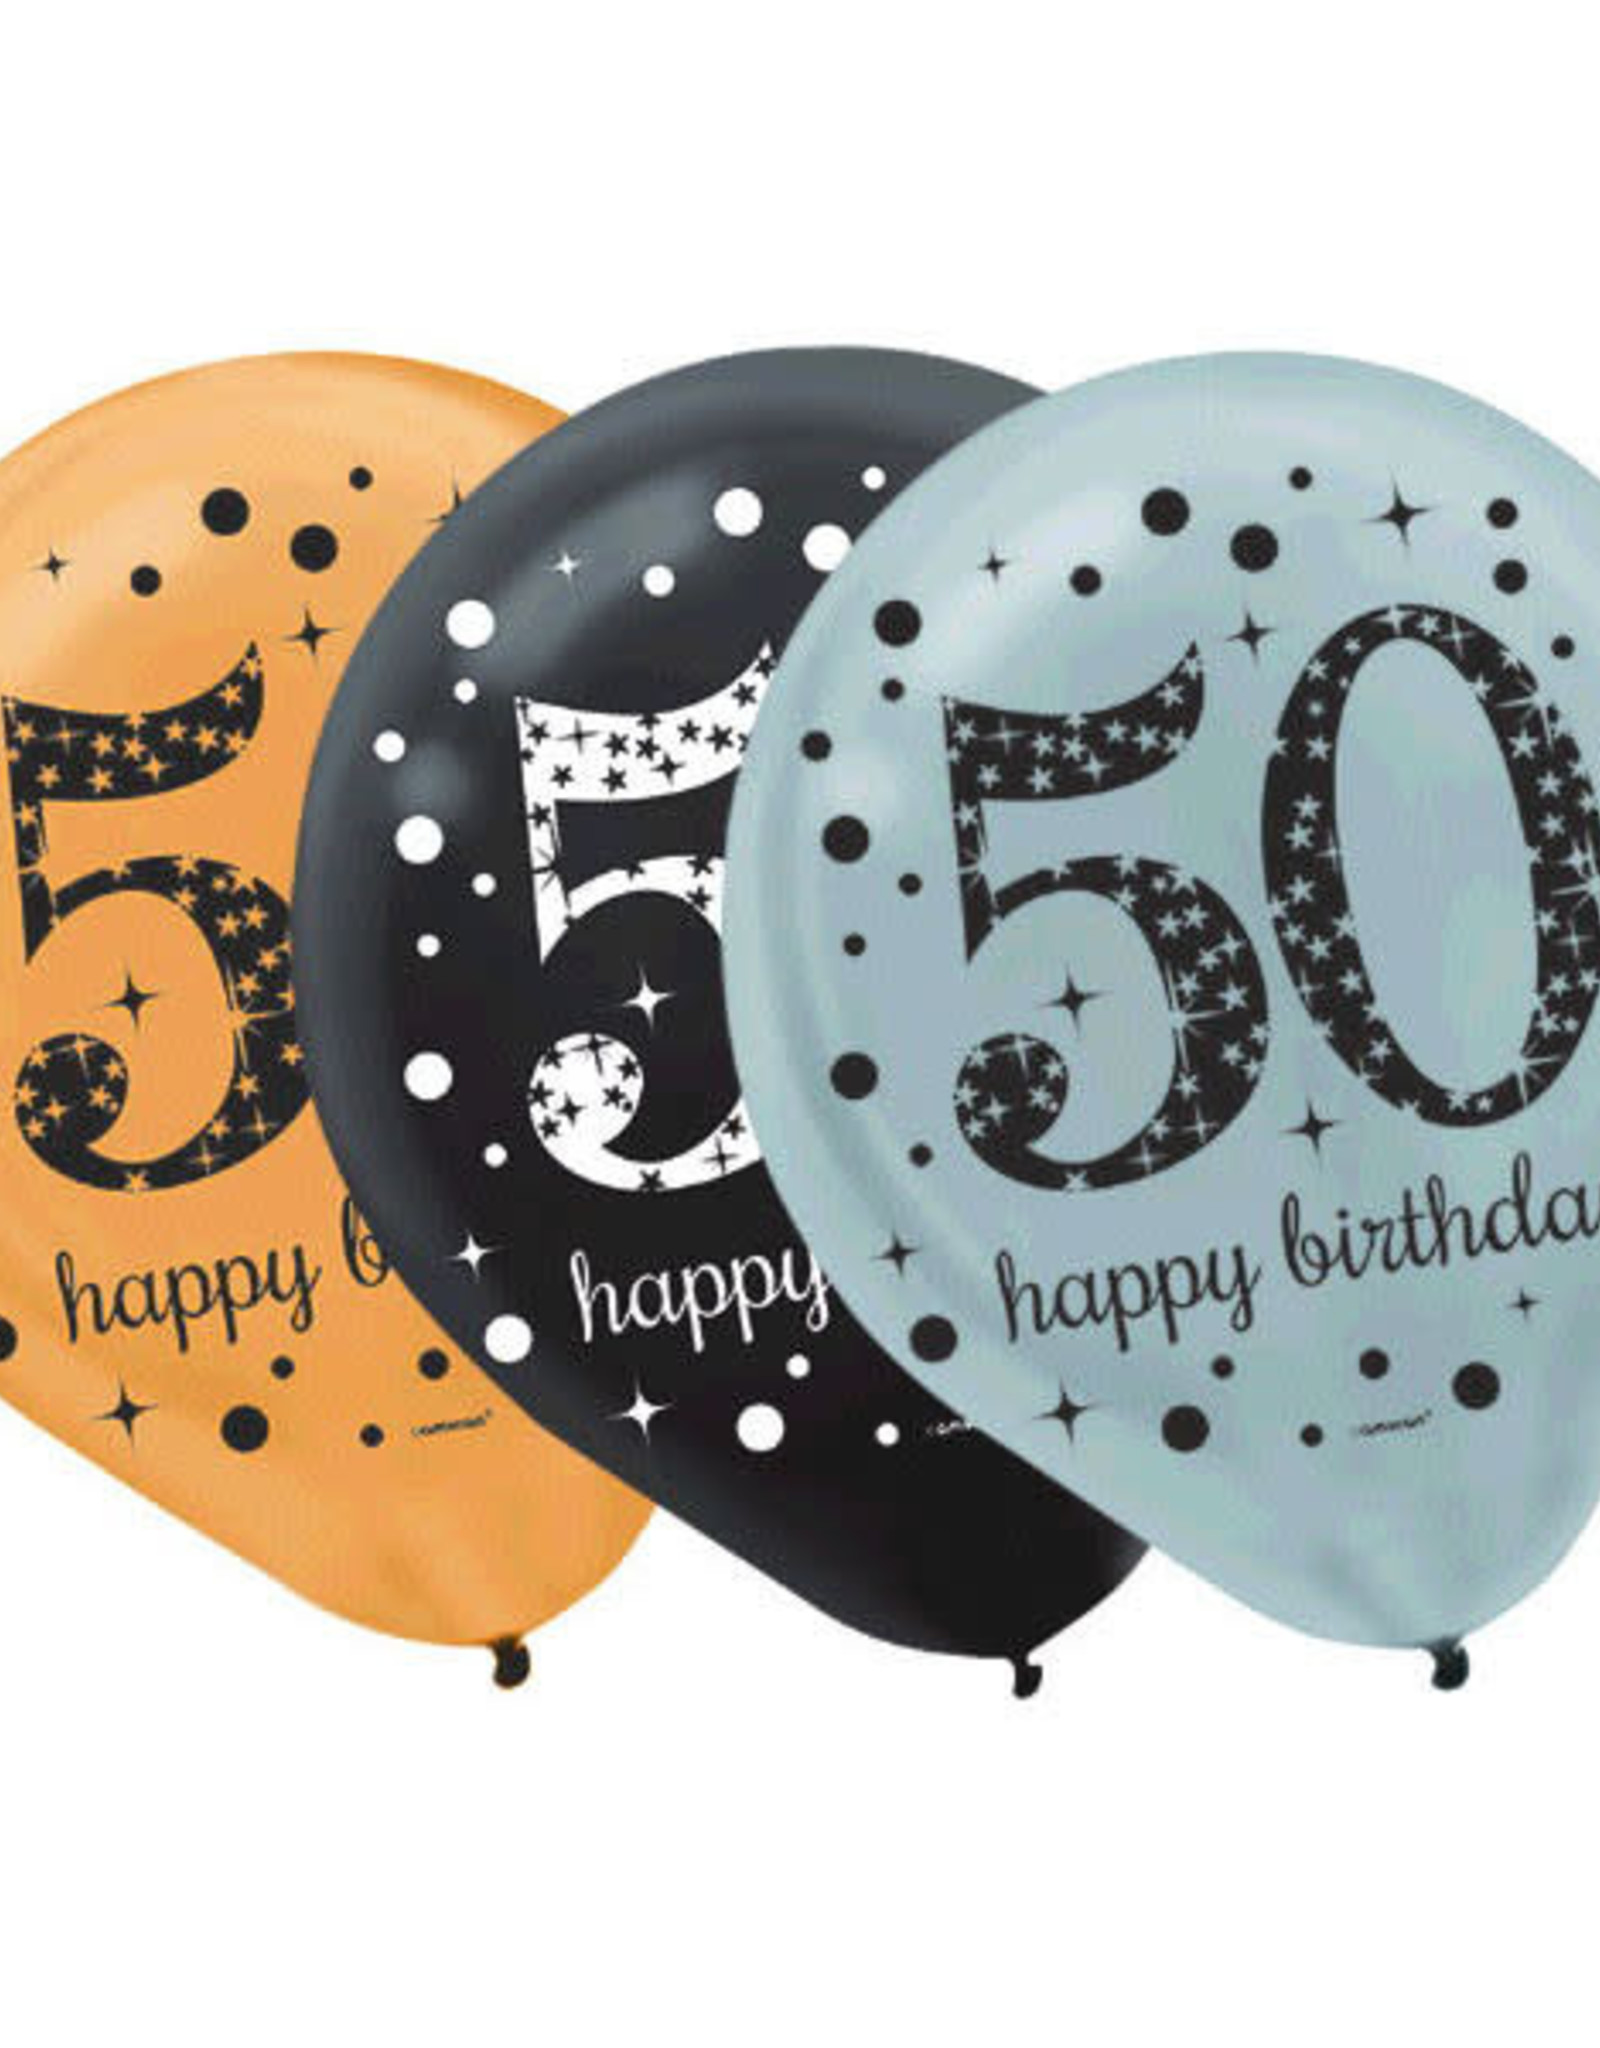 Sparkling Celebration 50th Birthday Latex Balloons Black, Silver & Gold 15PK